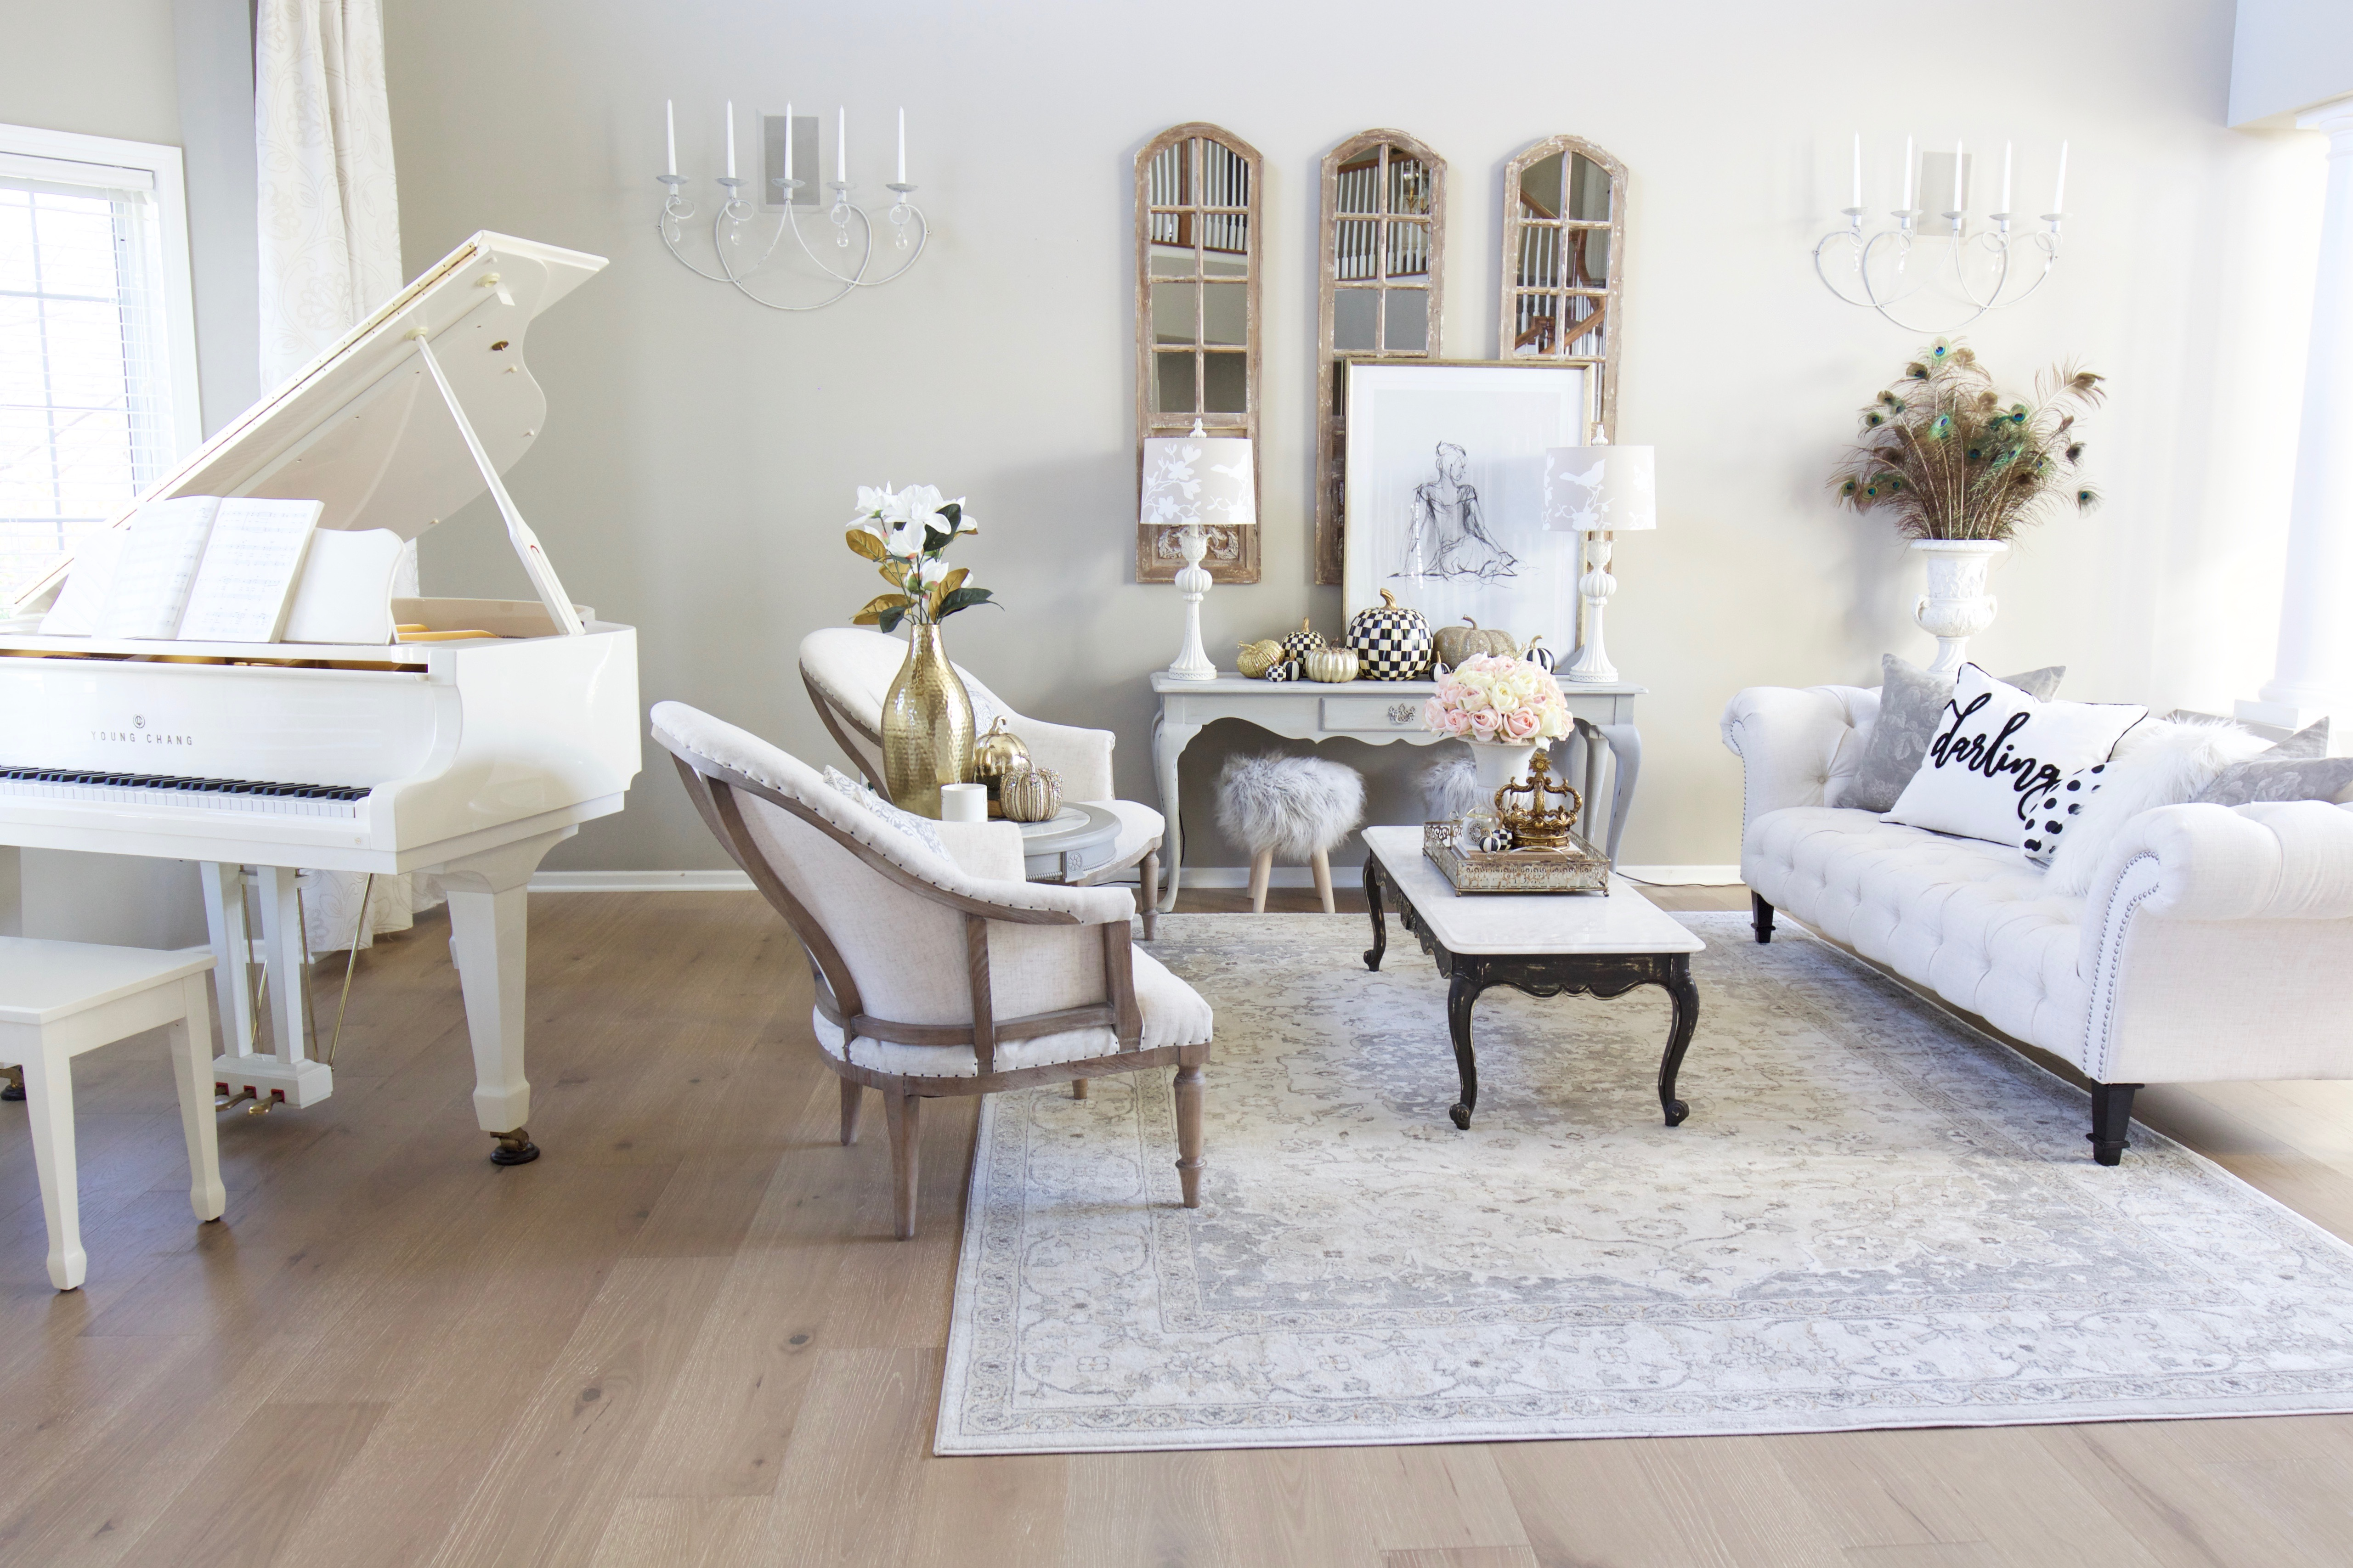 French Glam Living Room Reveal with New Wood Floors - Styled ...